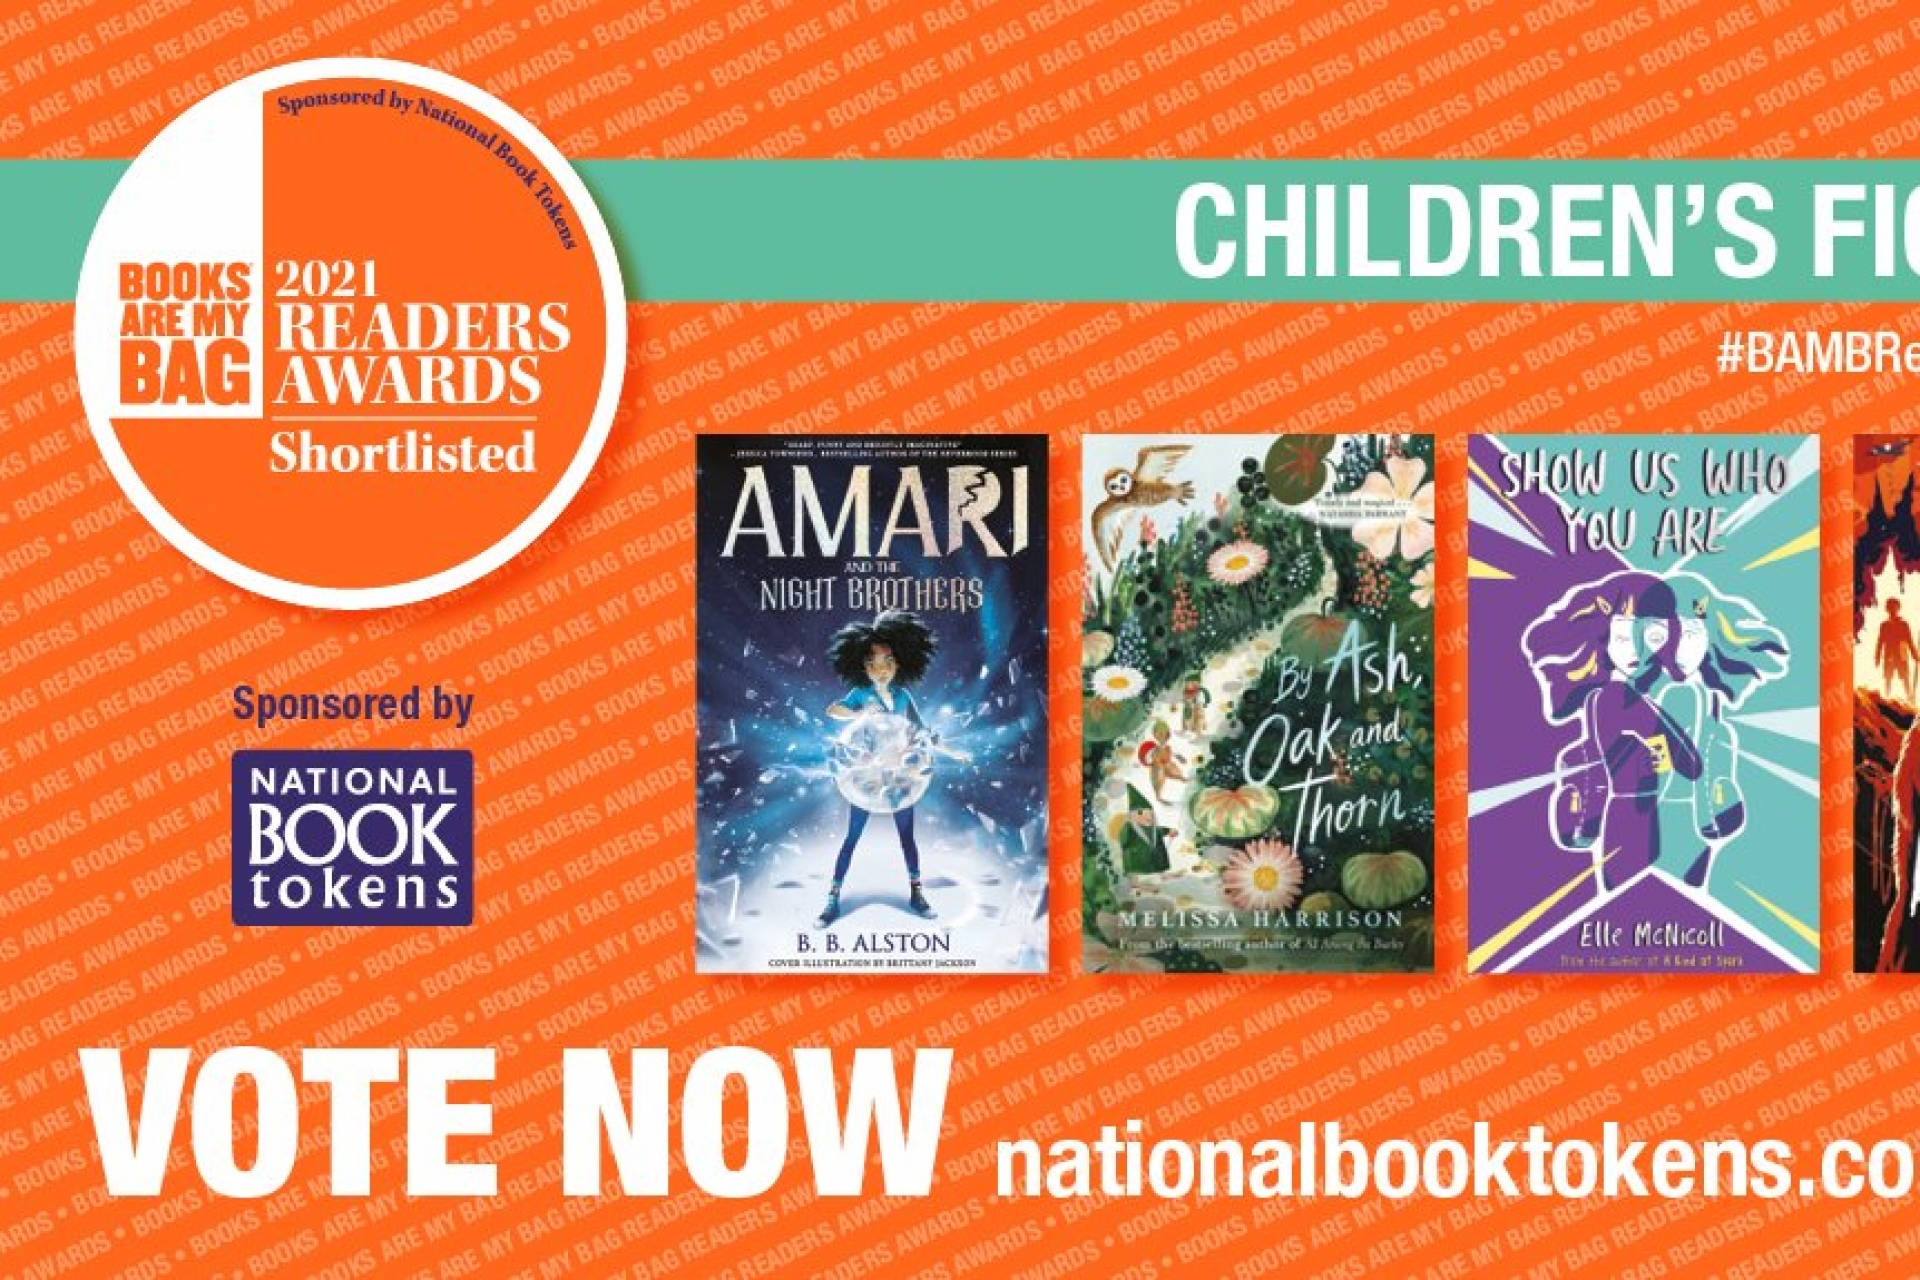 Vote for your favourite kids book and YA read in the Books Are My Bag Readers Awards